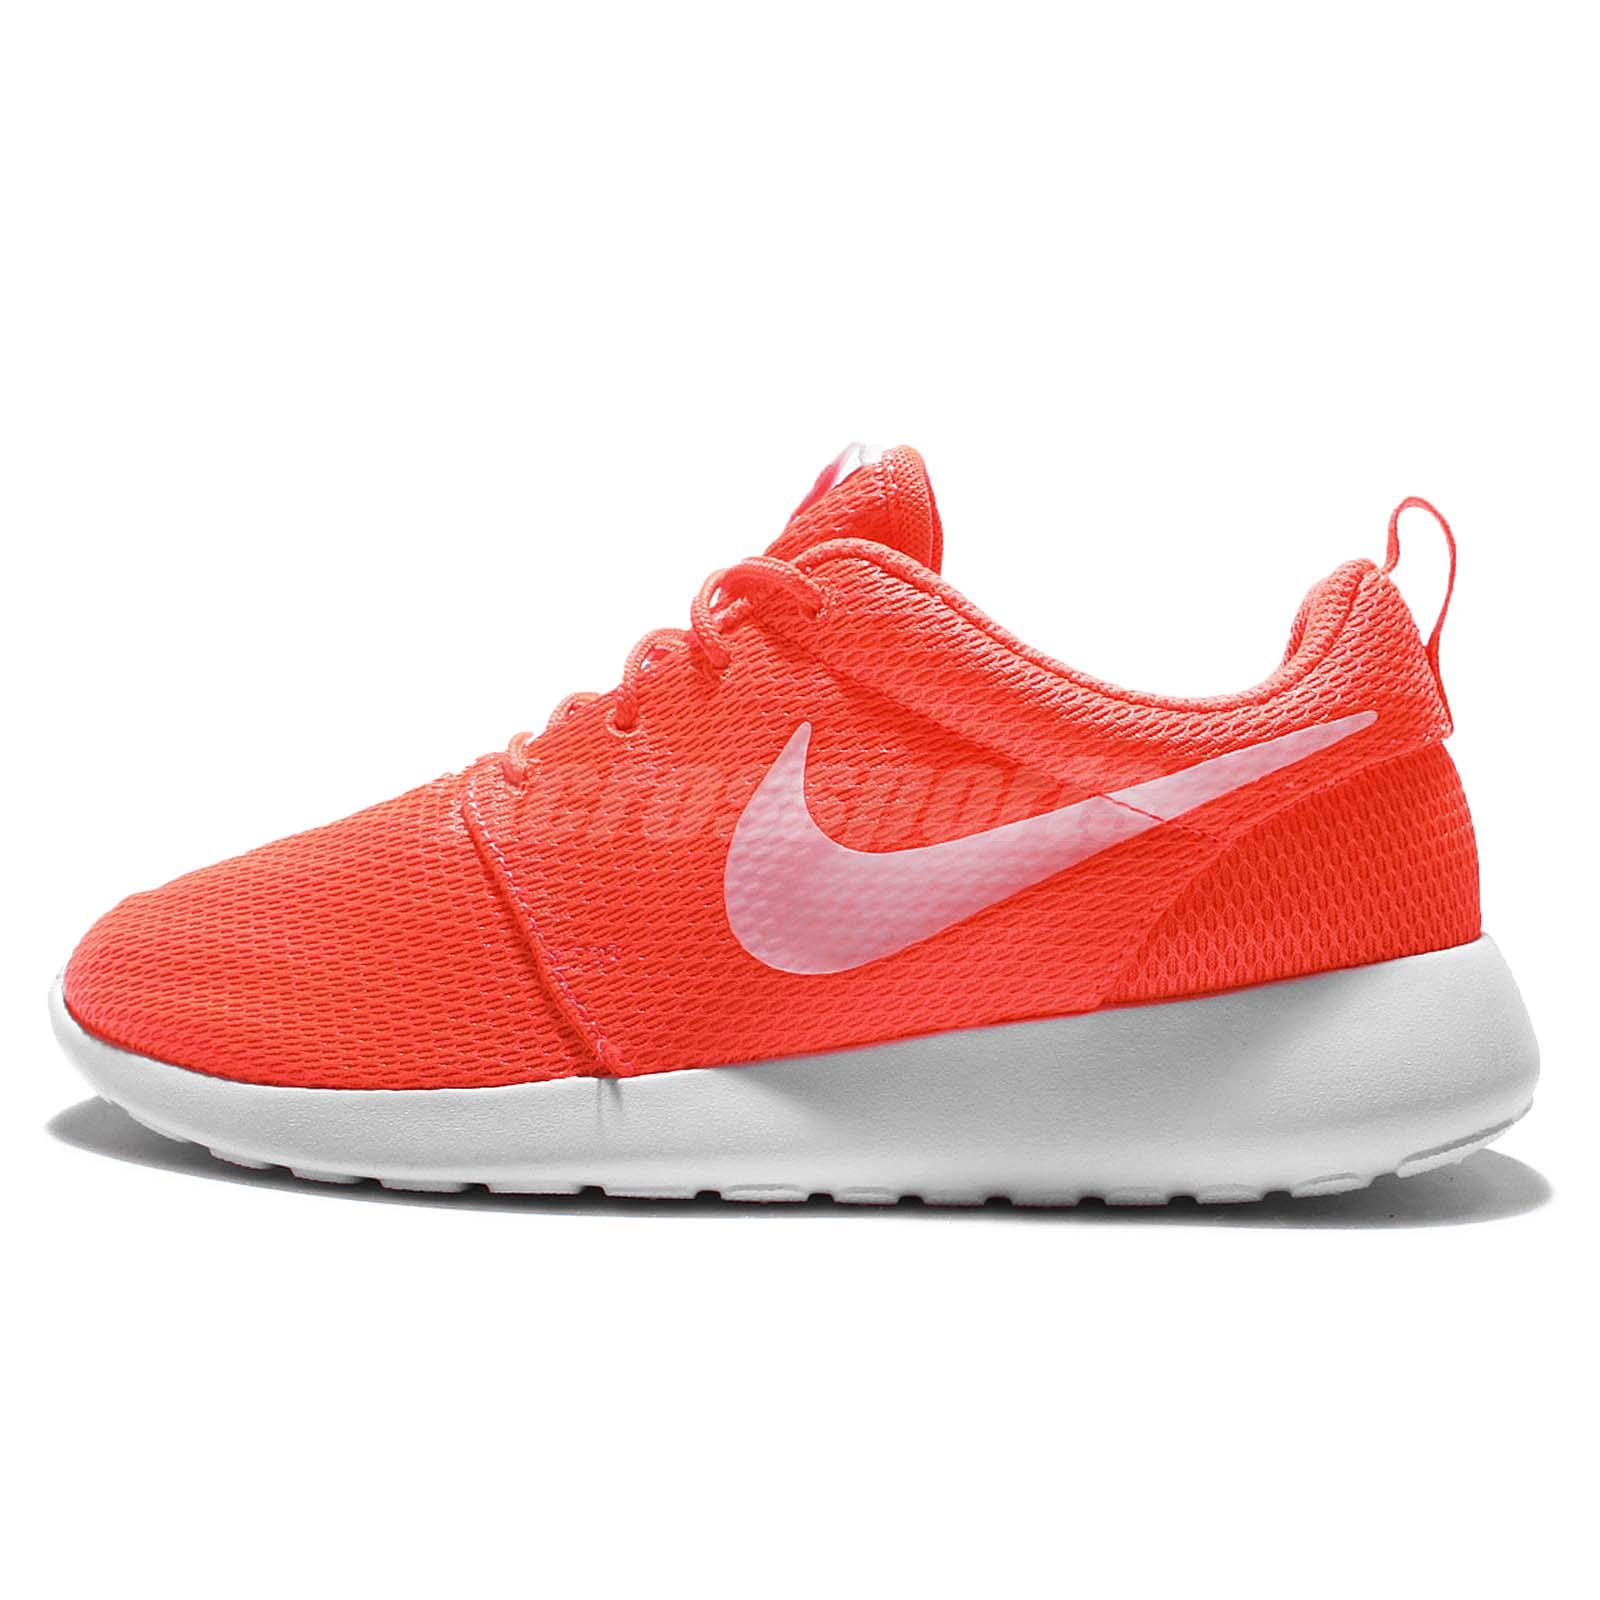 finest selection babff 94226 Nike Wmns Roshe Run One Total Crimson Women Running Shoes Sneakers 511882- 818